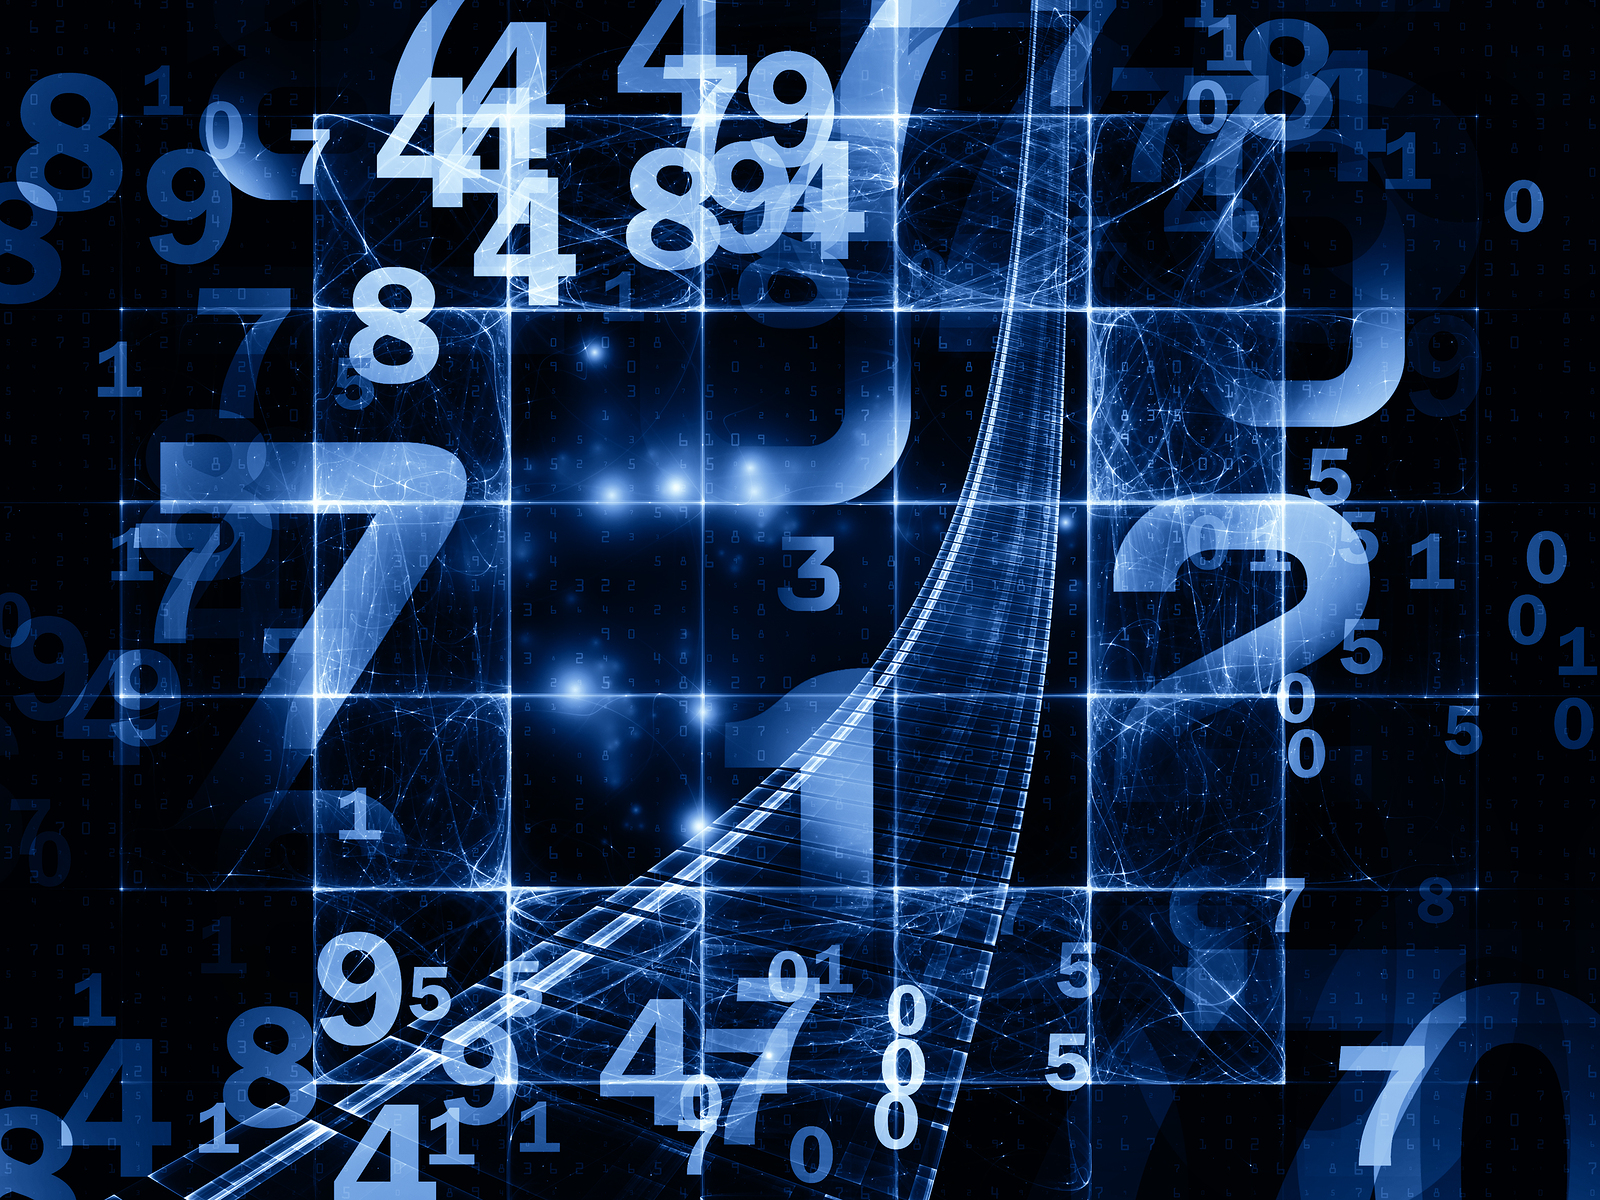 virtual mathematics mdash stock - photo #47